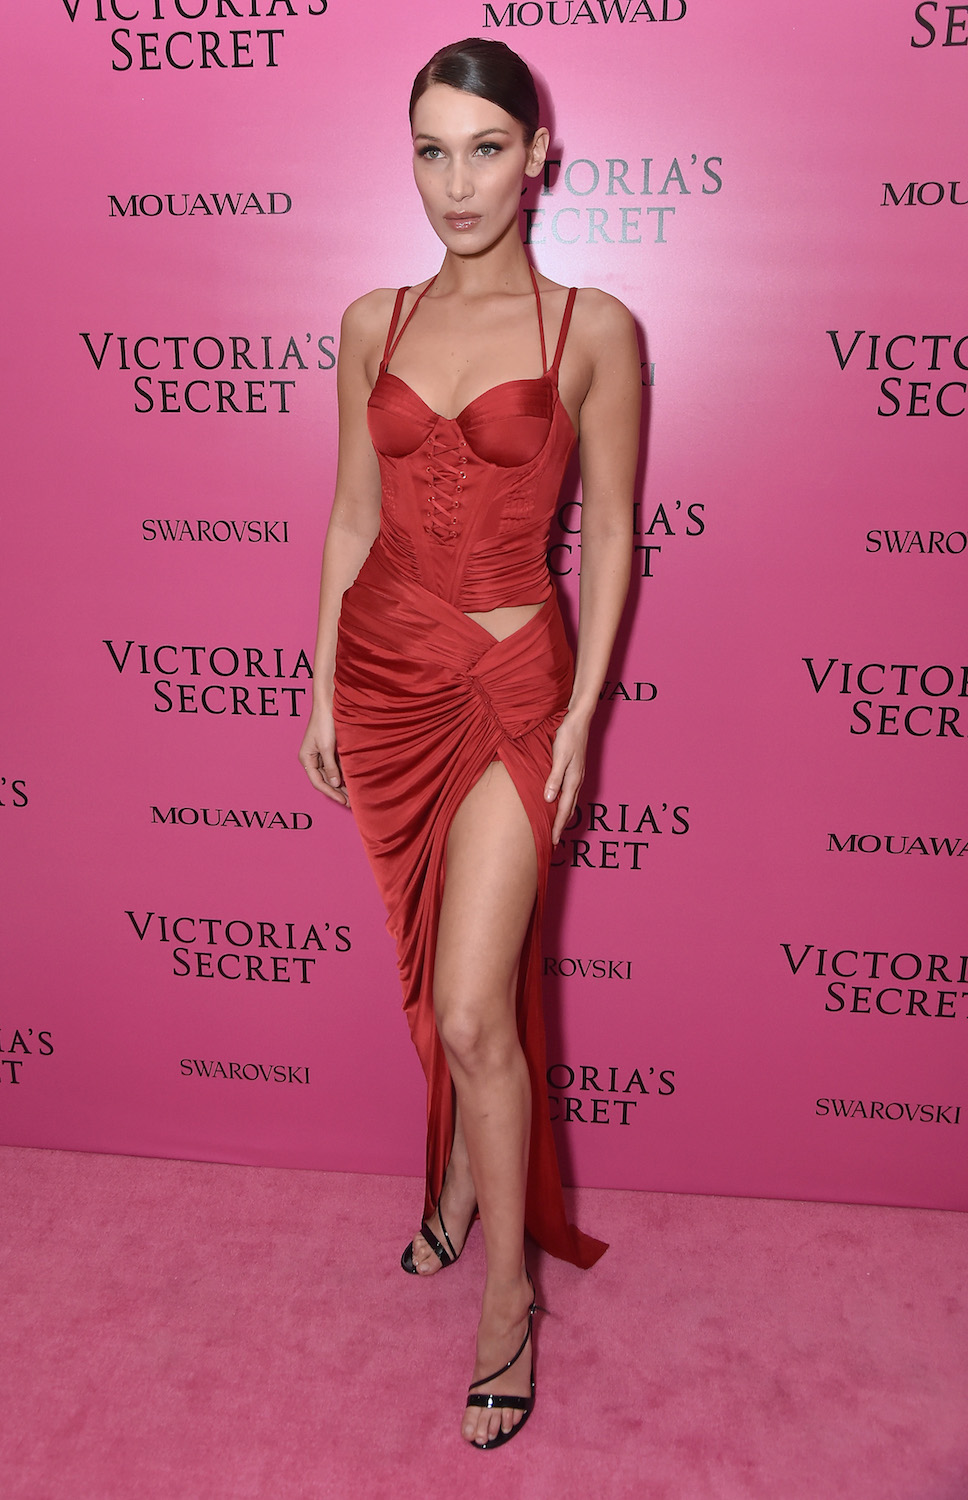 SHANGHAI, CHINA - NOVEMBER 20: Bella Hadid attends the 2017 Victoria's Secret Fashion Show In Shanghai After Party at Mercedes-Benz Arena on November 20, 2017 in Shanghai, China. (Photo by Theo Wargo/Getty Images for Victoria's Secret)